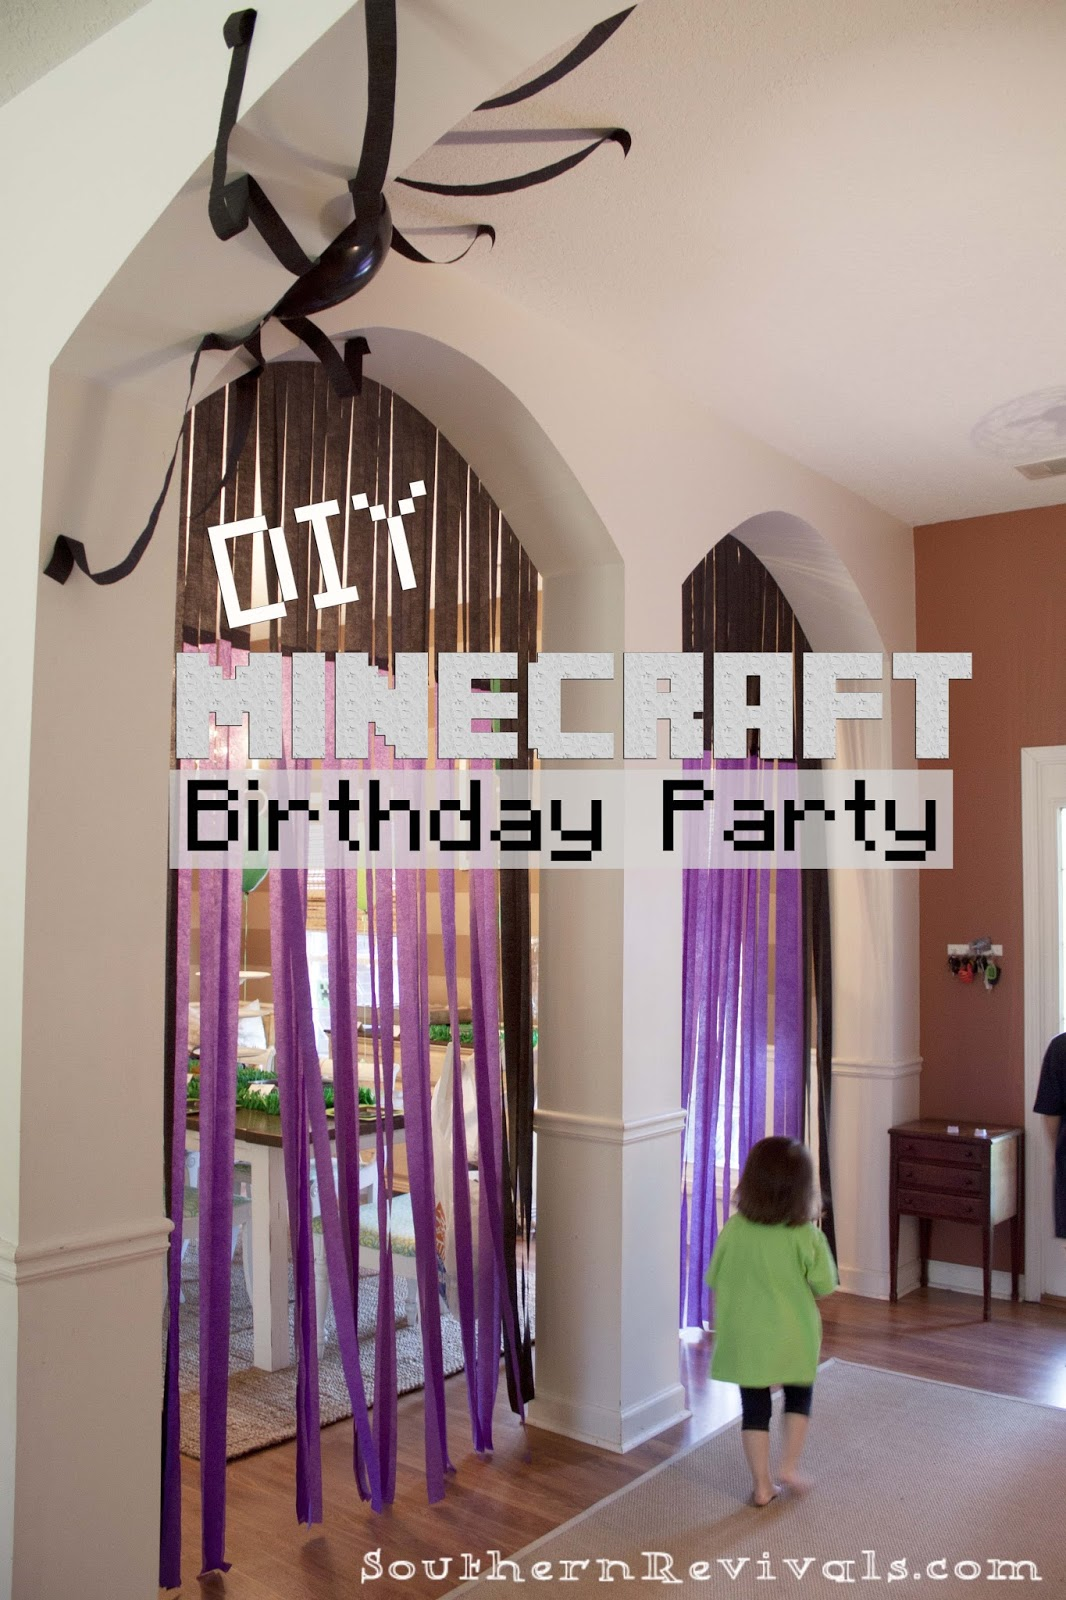 Diy minecraft birthday party craft ideas party favors diy minecraft birthday party solutioingenieria